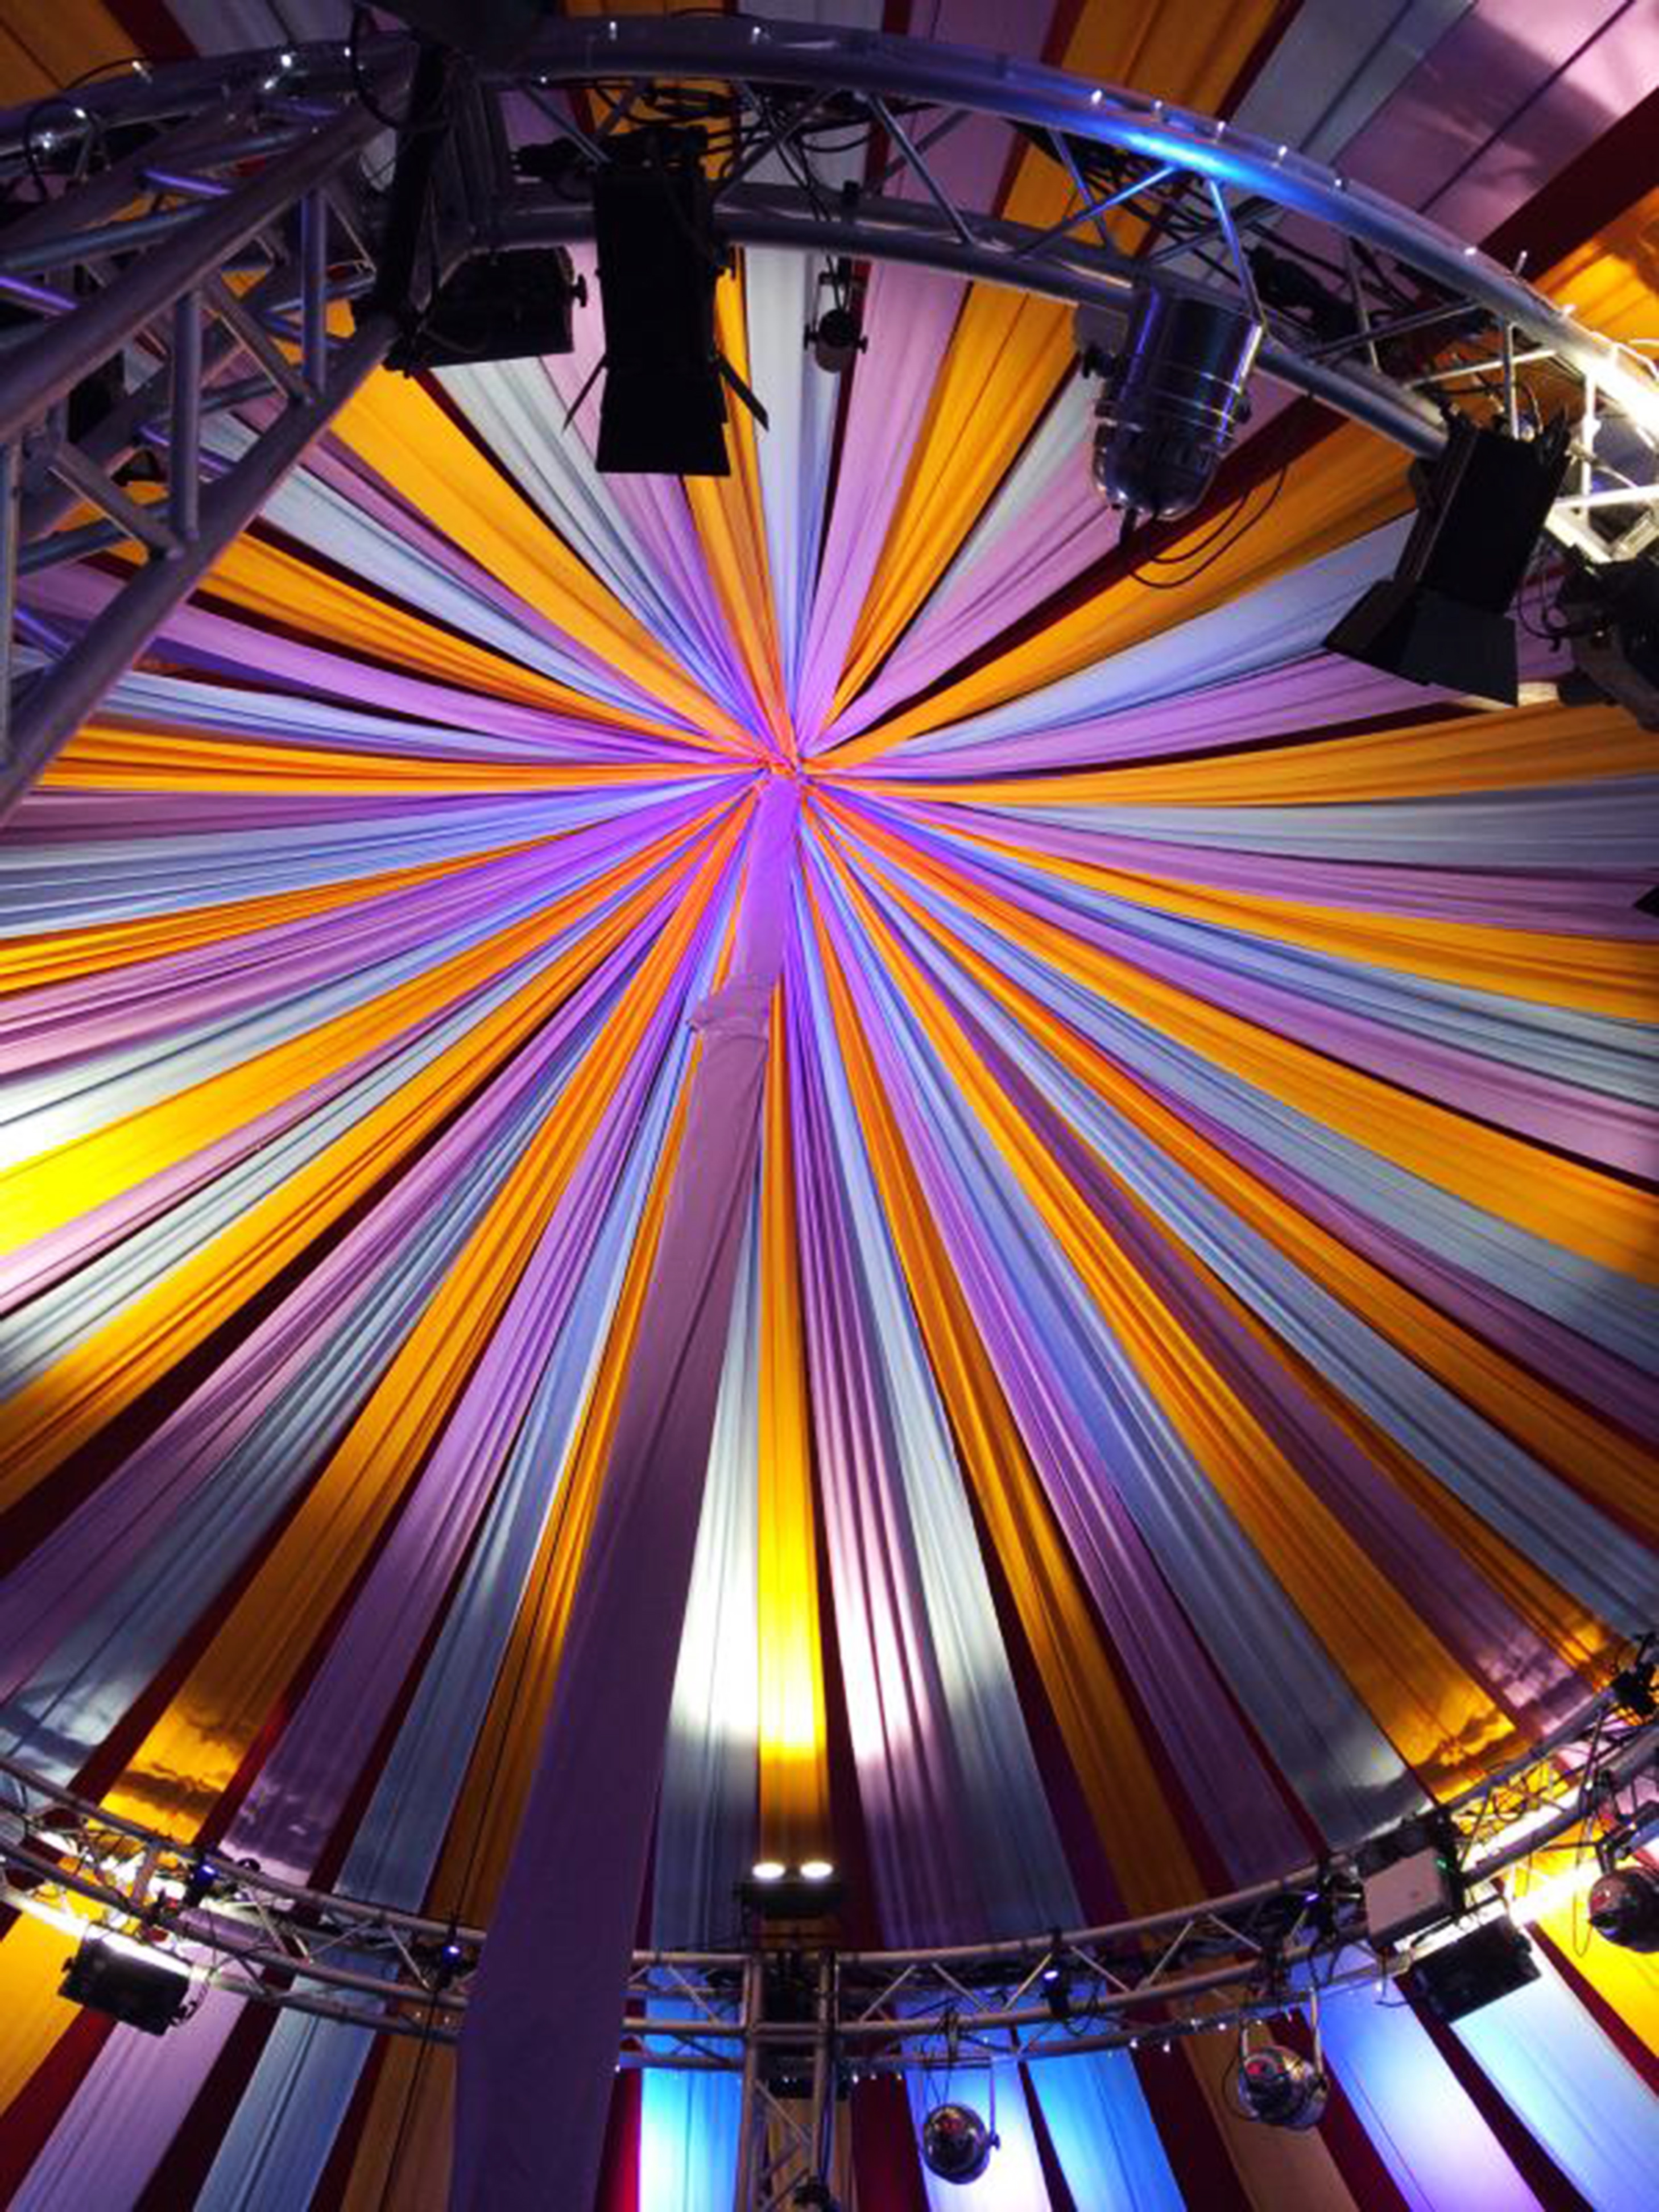 Circus inspired ceiling.